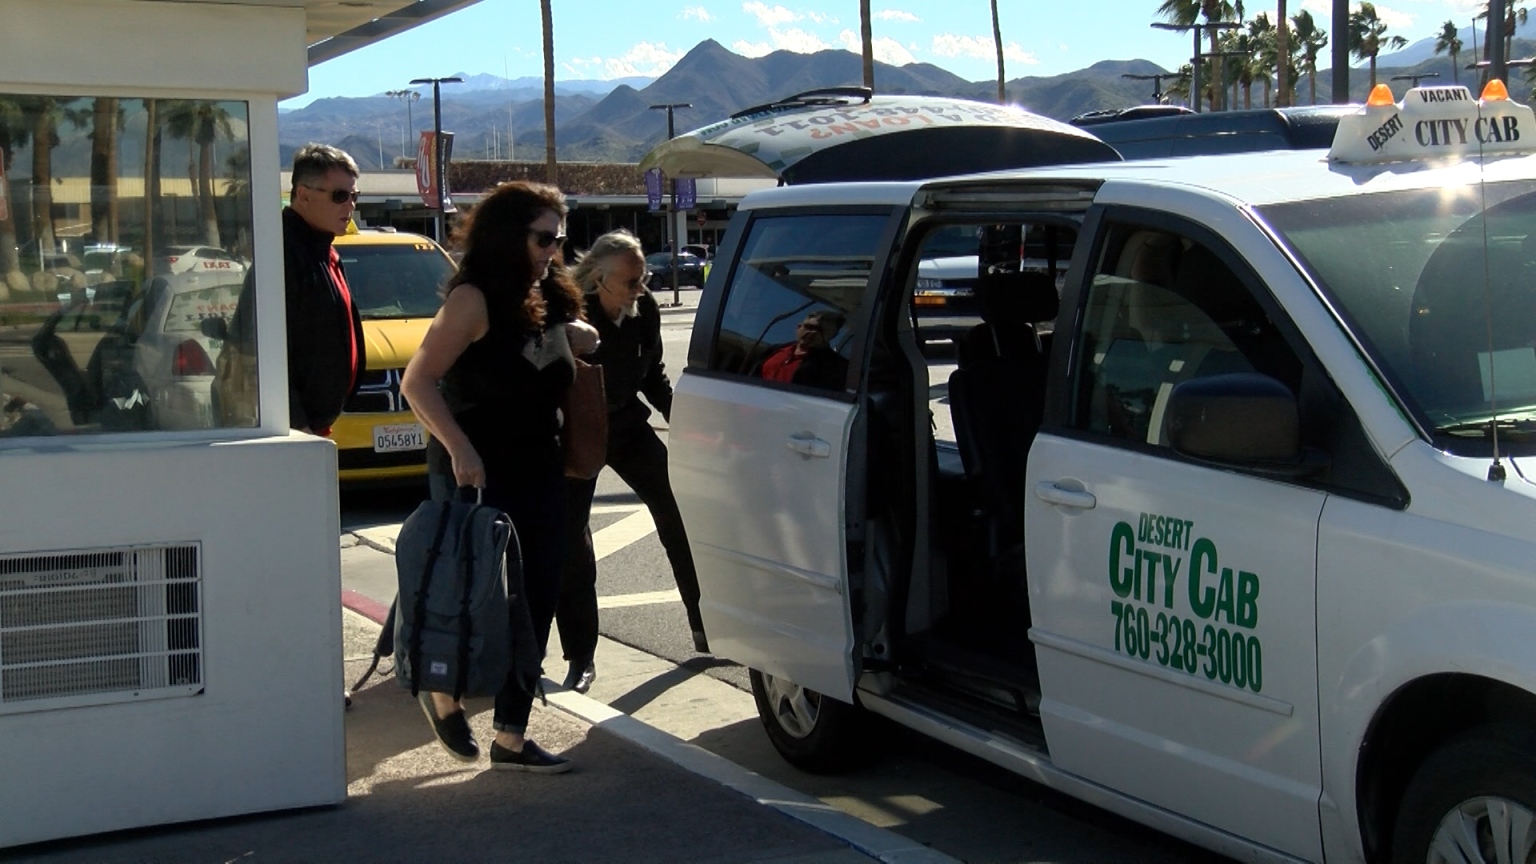 Passenger pick-up system used by taxi drivers down for months